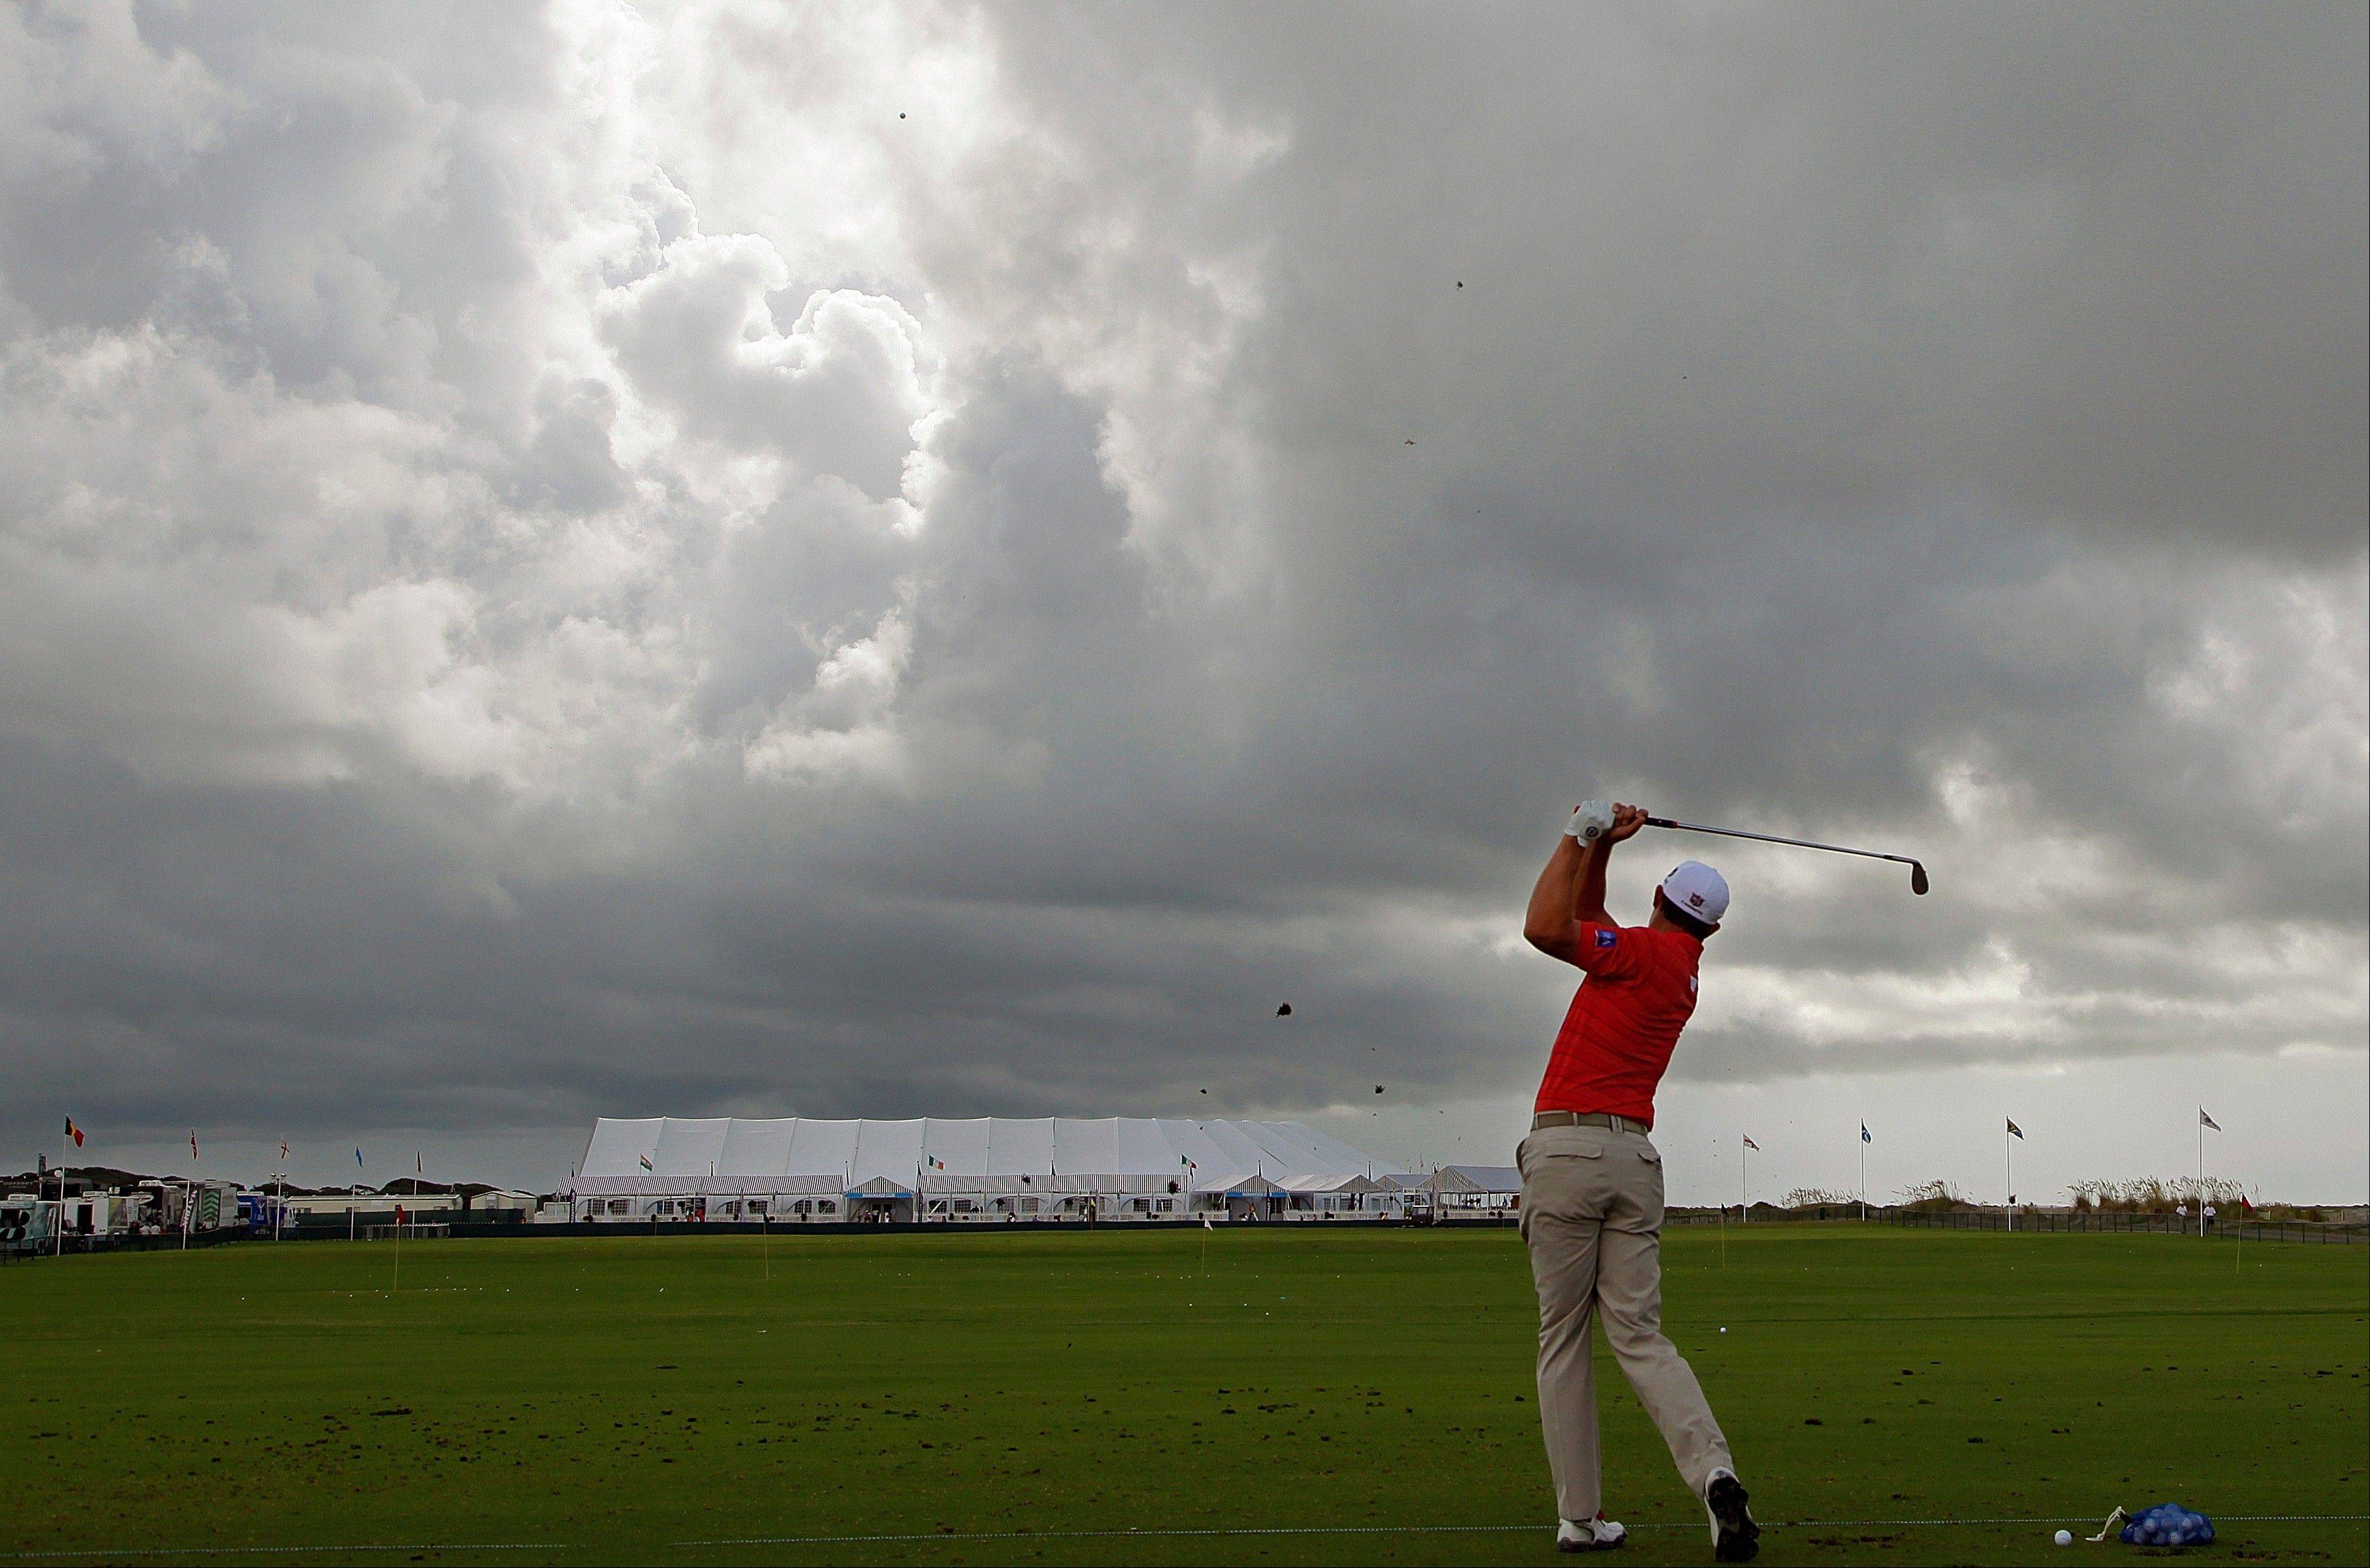 Padraig Harrington warms up on the driving range under storms clouds Tuesday during a practice round for the PGA Championship on the Ocean Course of the Kiawah Island Golf Club in Kiawah Island, S.C.